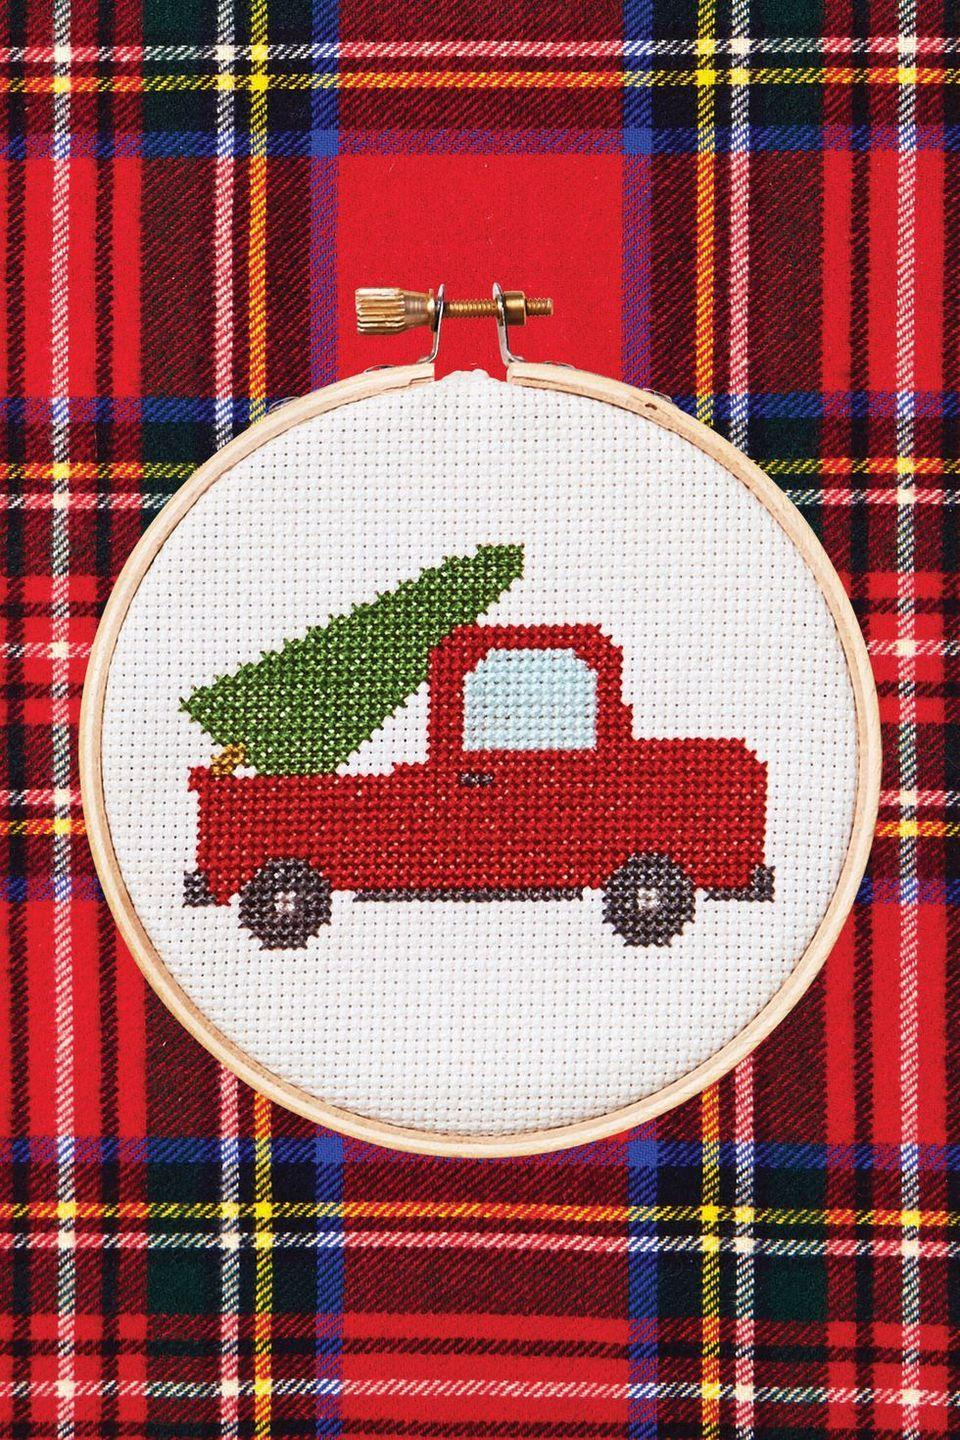 """<p>If you're handy with a needle and thread, stitch a super-cute Christmas motif that your loved one can display year after year.<a href=""""https://www.countryliving.com/diy-crafts/a6380/cross-stitch/"""" rel=""""nofollow noopener"""" target=""""_blank"""" data-ylk=""""slk:"""" class=""""link rapid-noclick-resp""""><strong><br></strong></a></p><p><strong><a href=""""https://www.countryliving.com/diy-crafts/a6380/cross-stitch/"""" rel=""""nofollow noopener"""" target=""""_blank"""" data-ylk=""""slk:Get the pattern"""" class=""""link rapid-noclick-resp"""">Get the pattern</a>.</strong><br></p><p><a class=""""link rapid-noclick-resp"""" href=""""https://www.amazon.com/Best-Sellers-Arts-Crafts-Sewing-Embroidery-Hoops/zgbs/arts-crafts/262621011?tag=syn-yahoo-20&ascsubtag=%5Bartid%7C10050.g.645%5Bsrc%7Cyahoo-us"""" rel=""""nofollow noopener"""" target=""""_blank"""" data-ylk=""""slk:SHOP EMBROIDERY HOOPS"""">SHOP EMBROIDERY HOOPS</a></p>"""